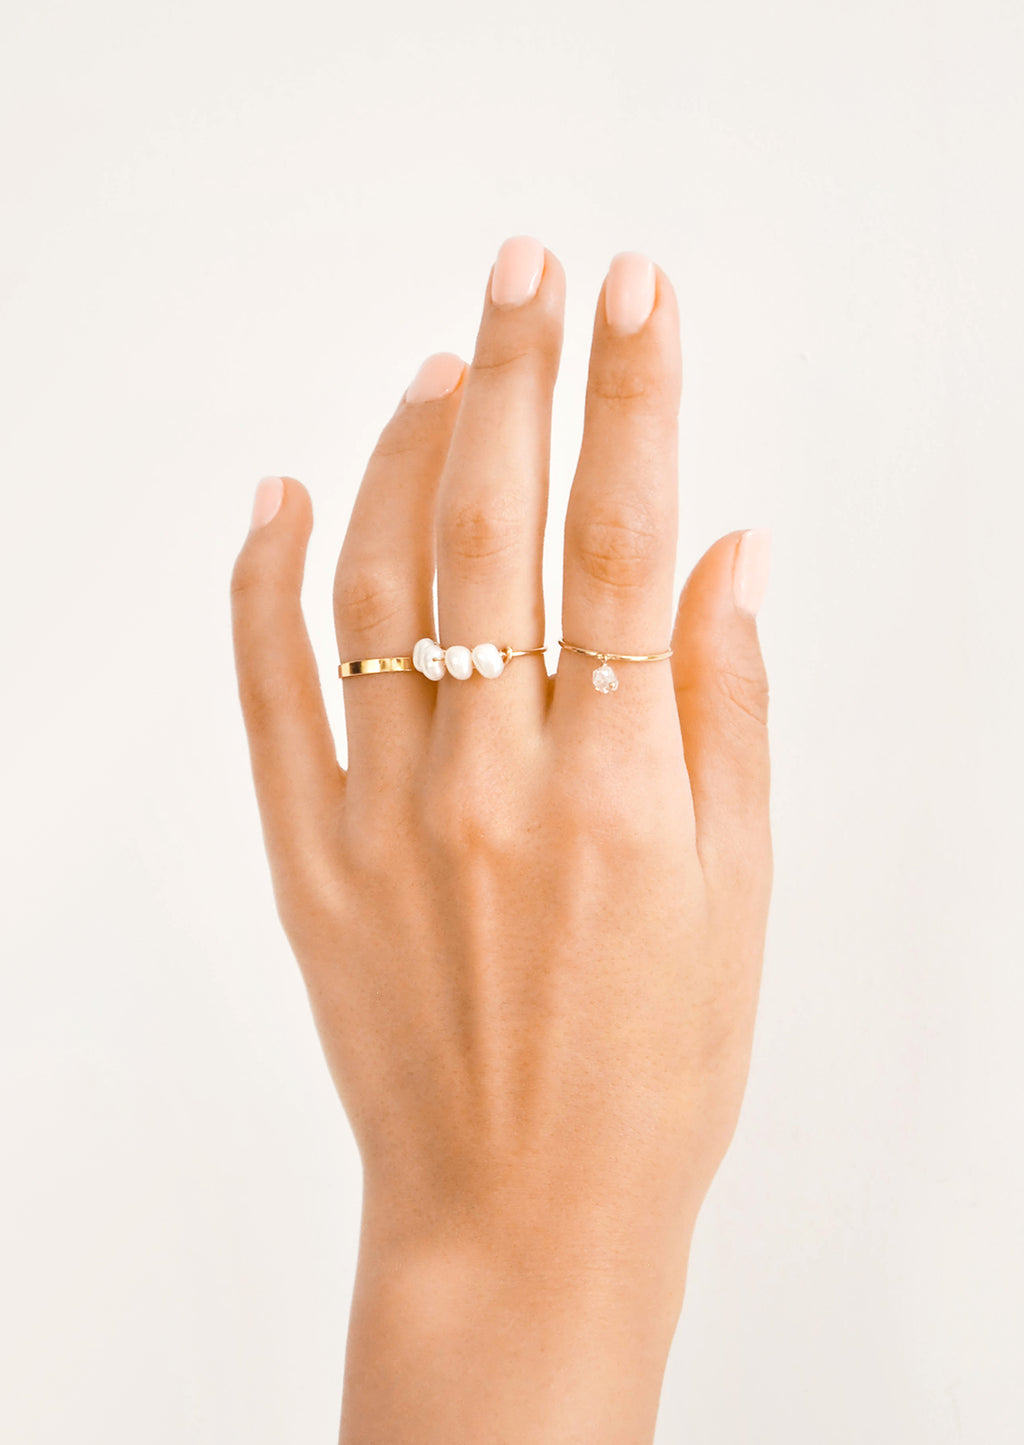 2: Hand modeling assorted gold and pearl rings